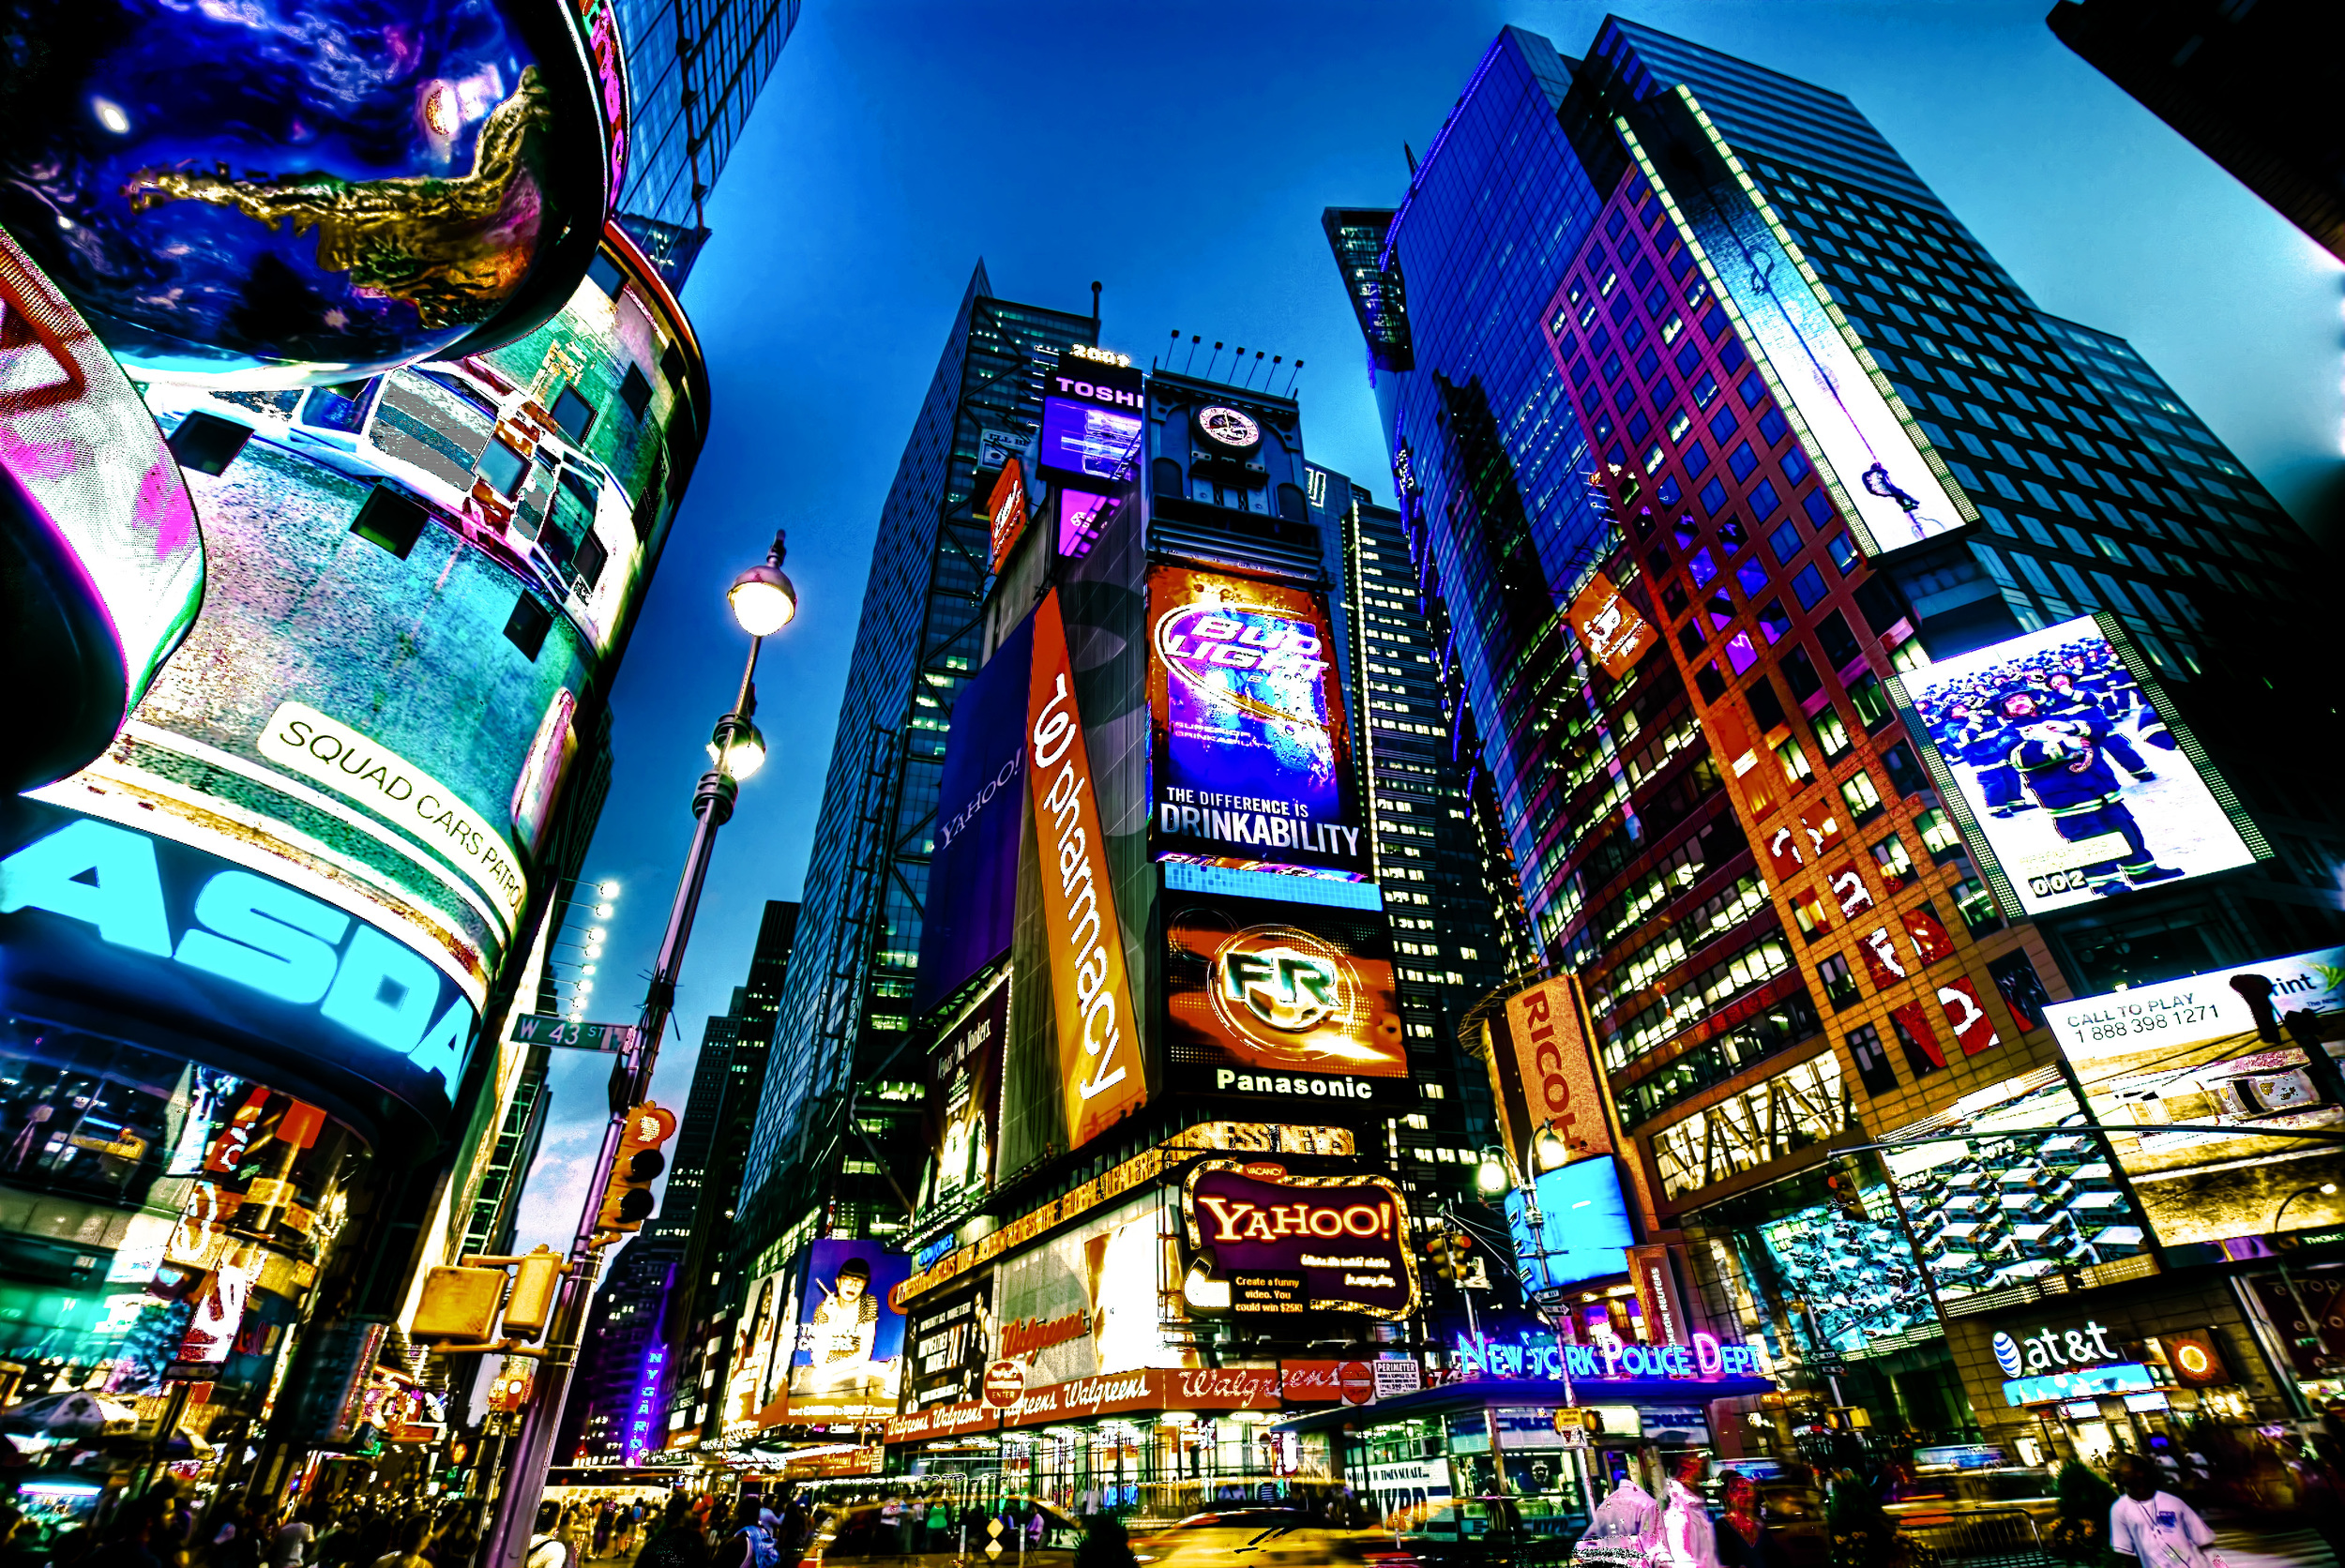 In need of a trip to NYC! Something about the culture is so motivating and inspiring.